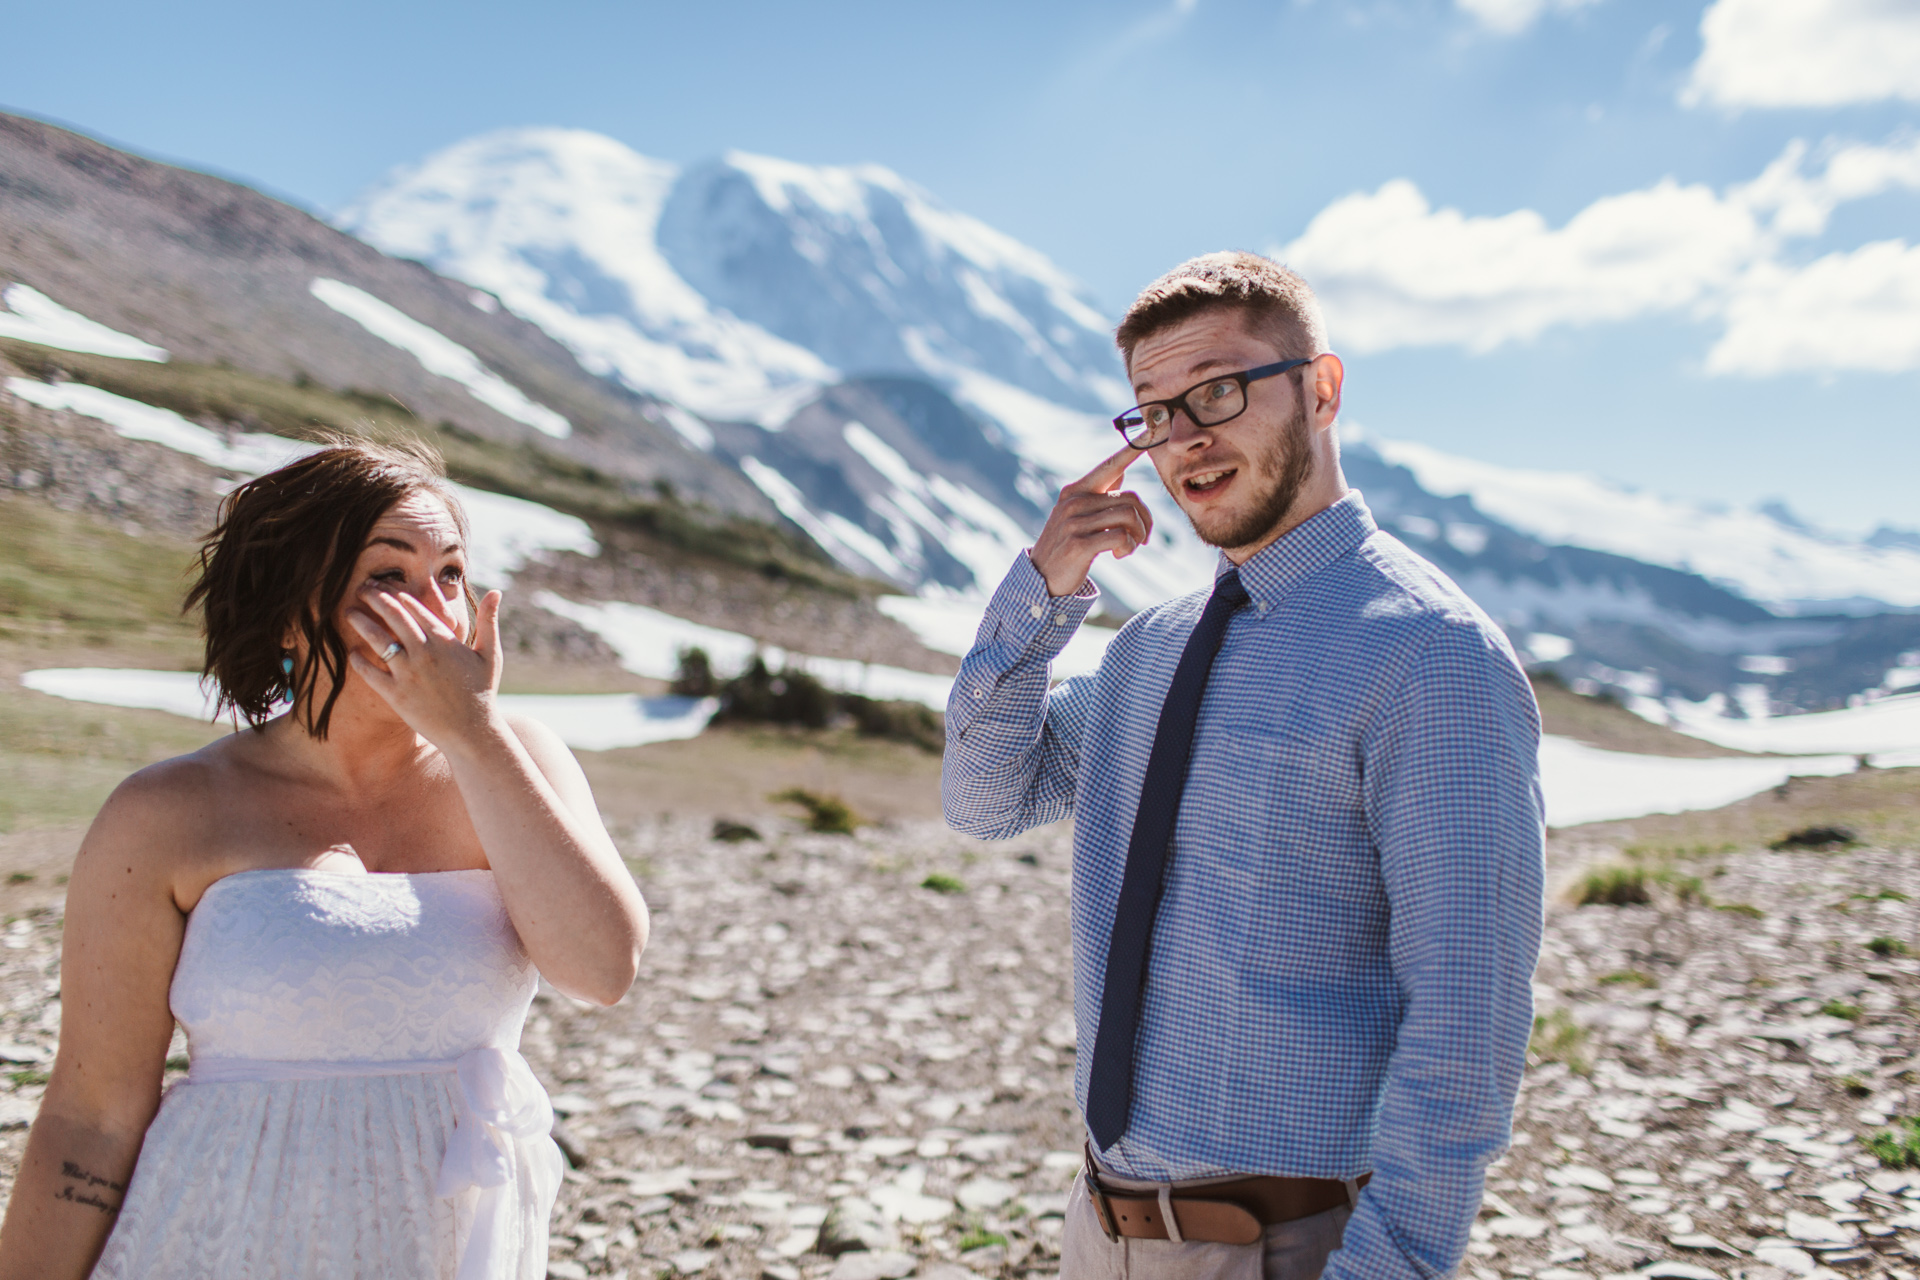 jess-hunter-photography-mt-rainier-elopement-photographer-seattle-washington-wedding-photographer--3666.jpg